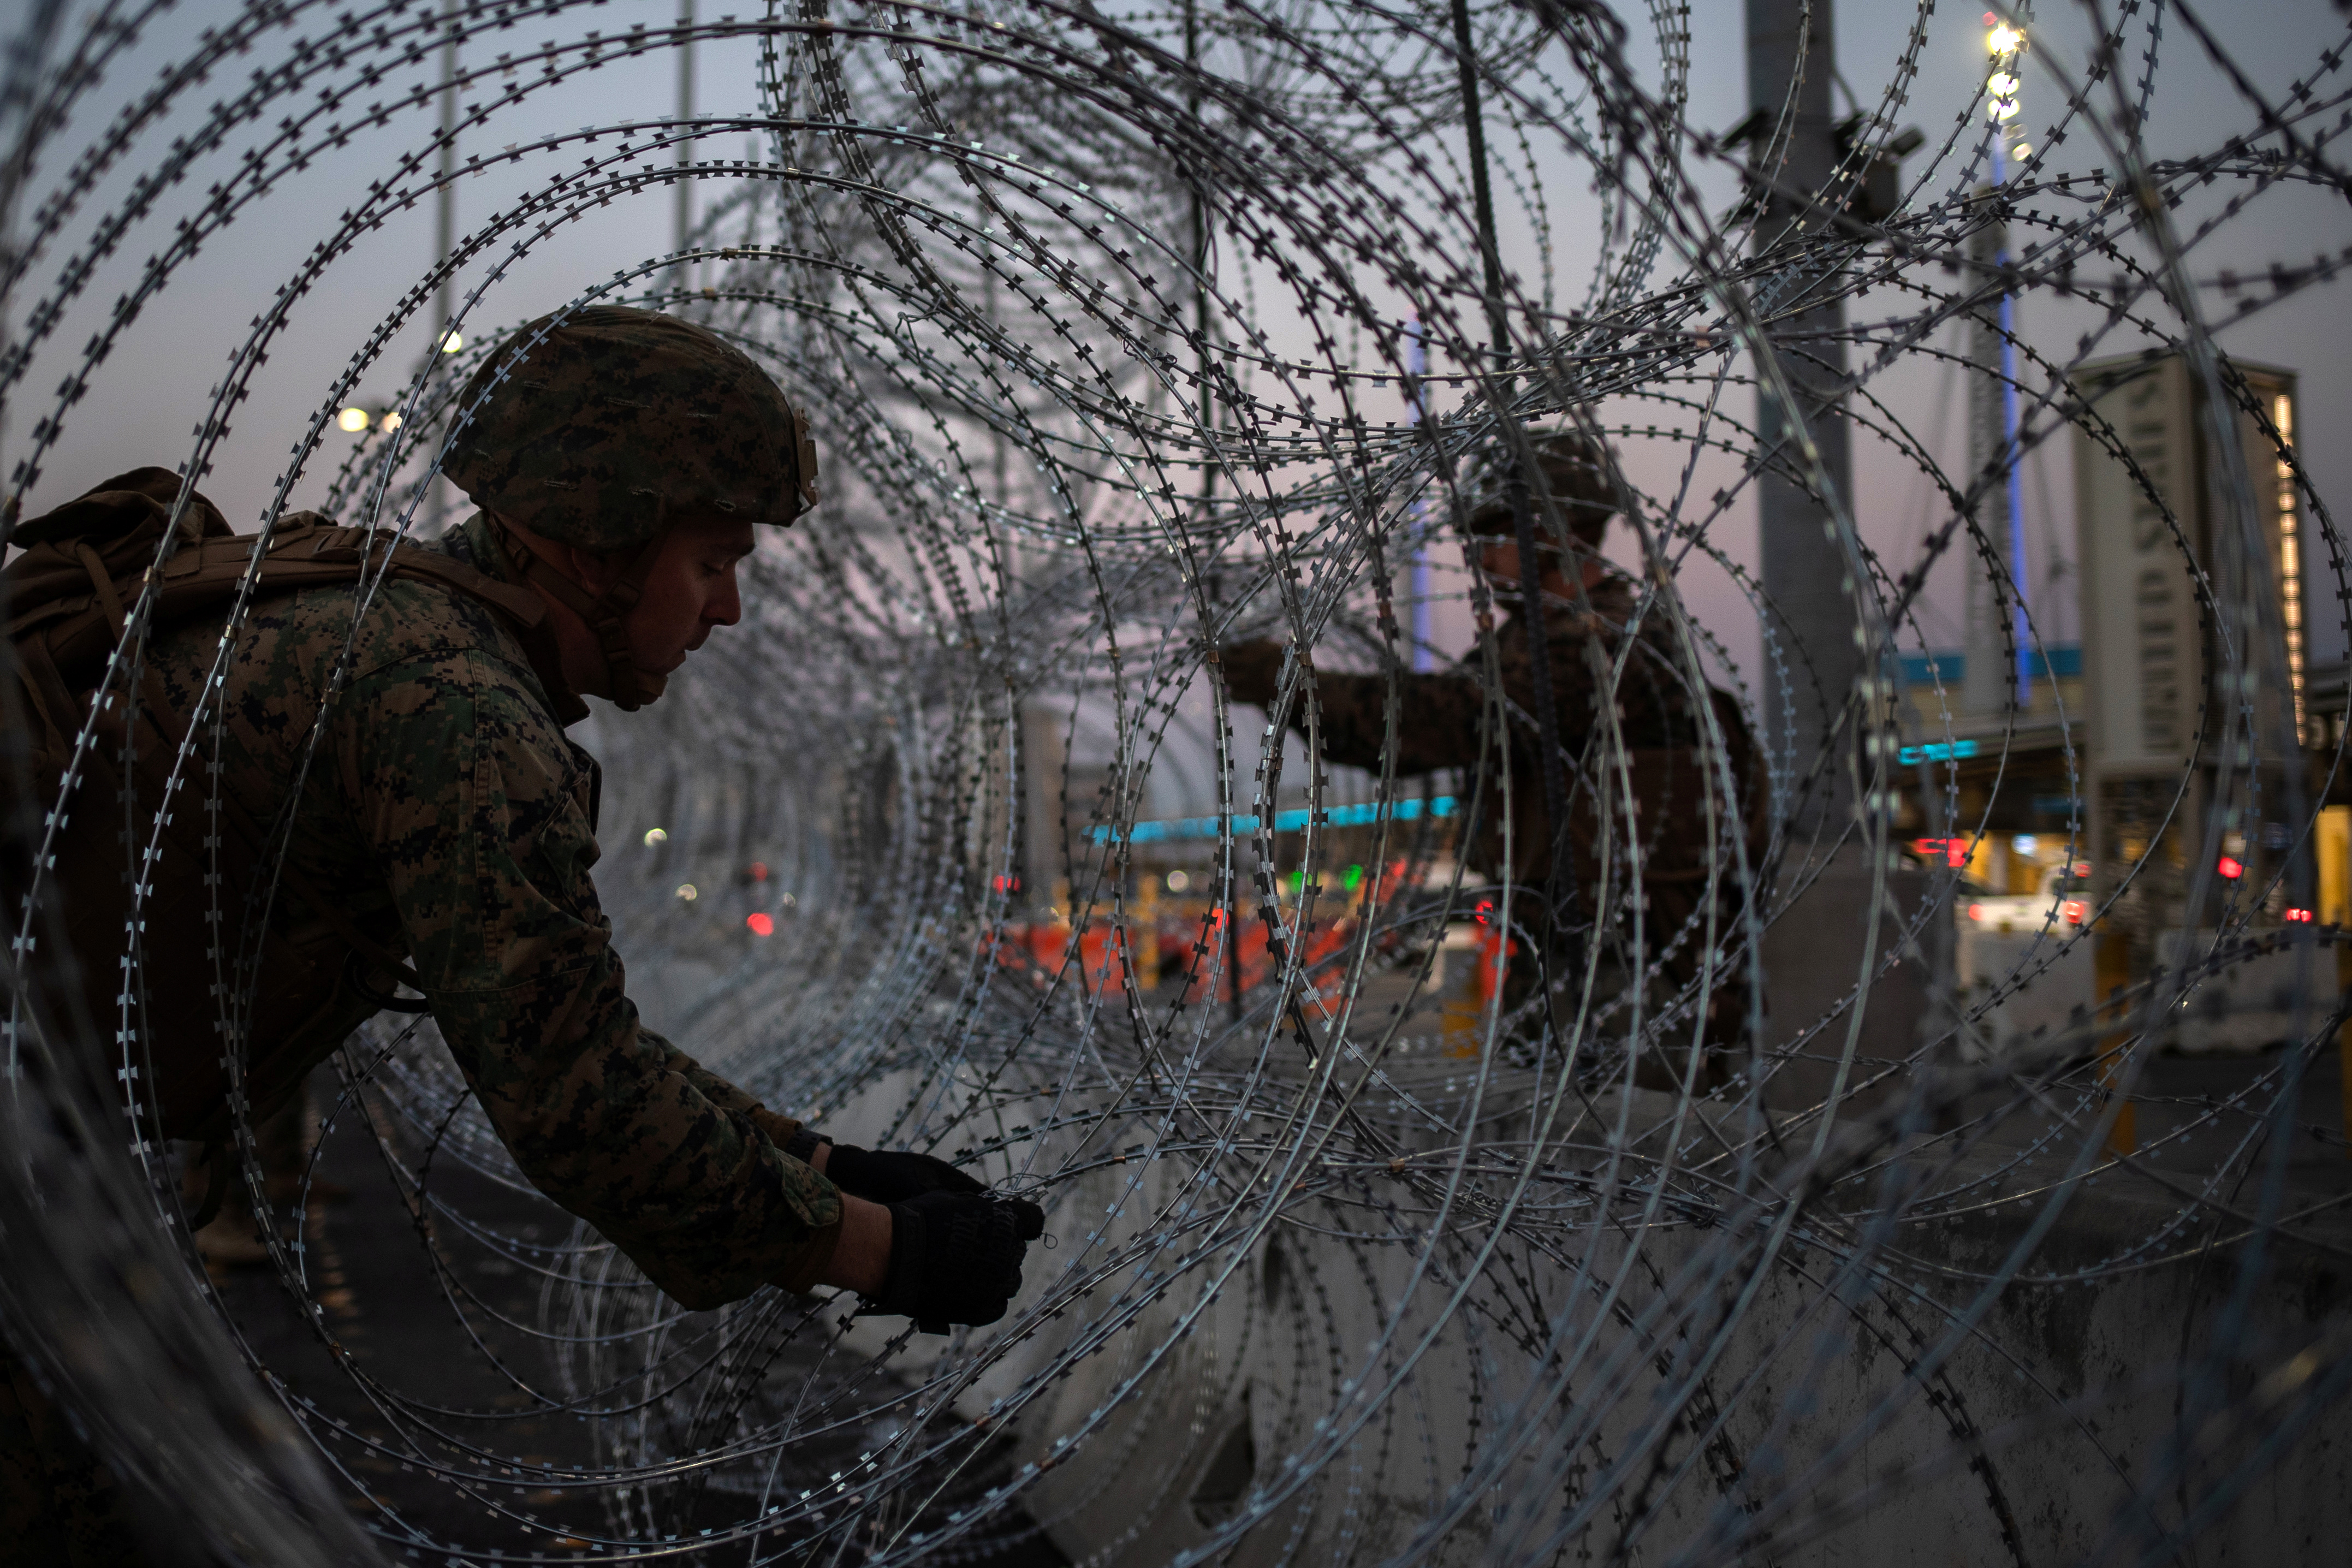 United States Marines fortify concertina wire along the San Ysidro Port of Entry border crossing as seen from Tijuana, Mexico November 20, 2018. REUTERS/Adrees Latif